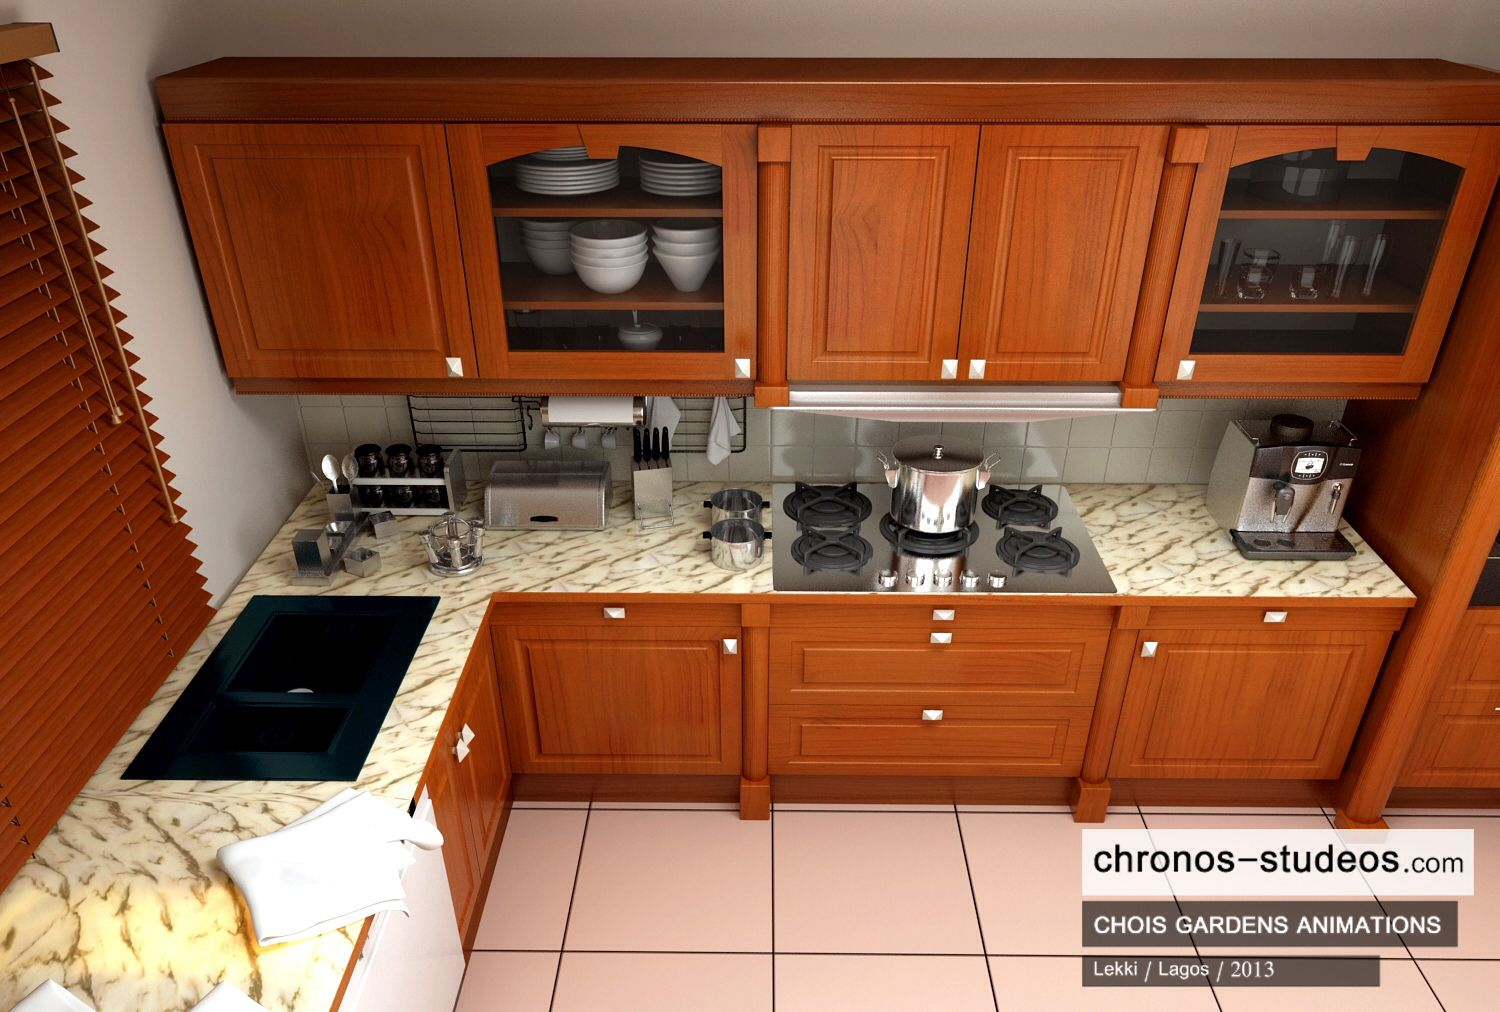 3d visualization by chronos studeos chois gardens lekki in lagos nigeria architecture design kitchen